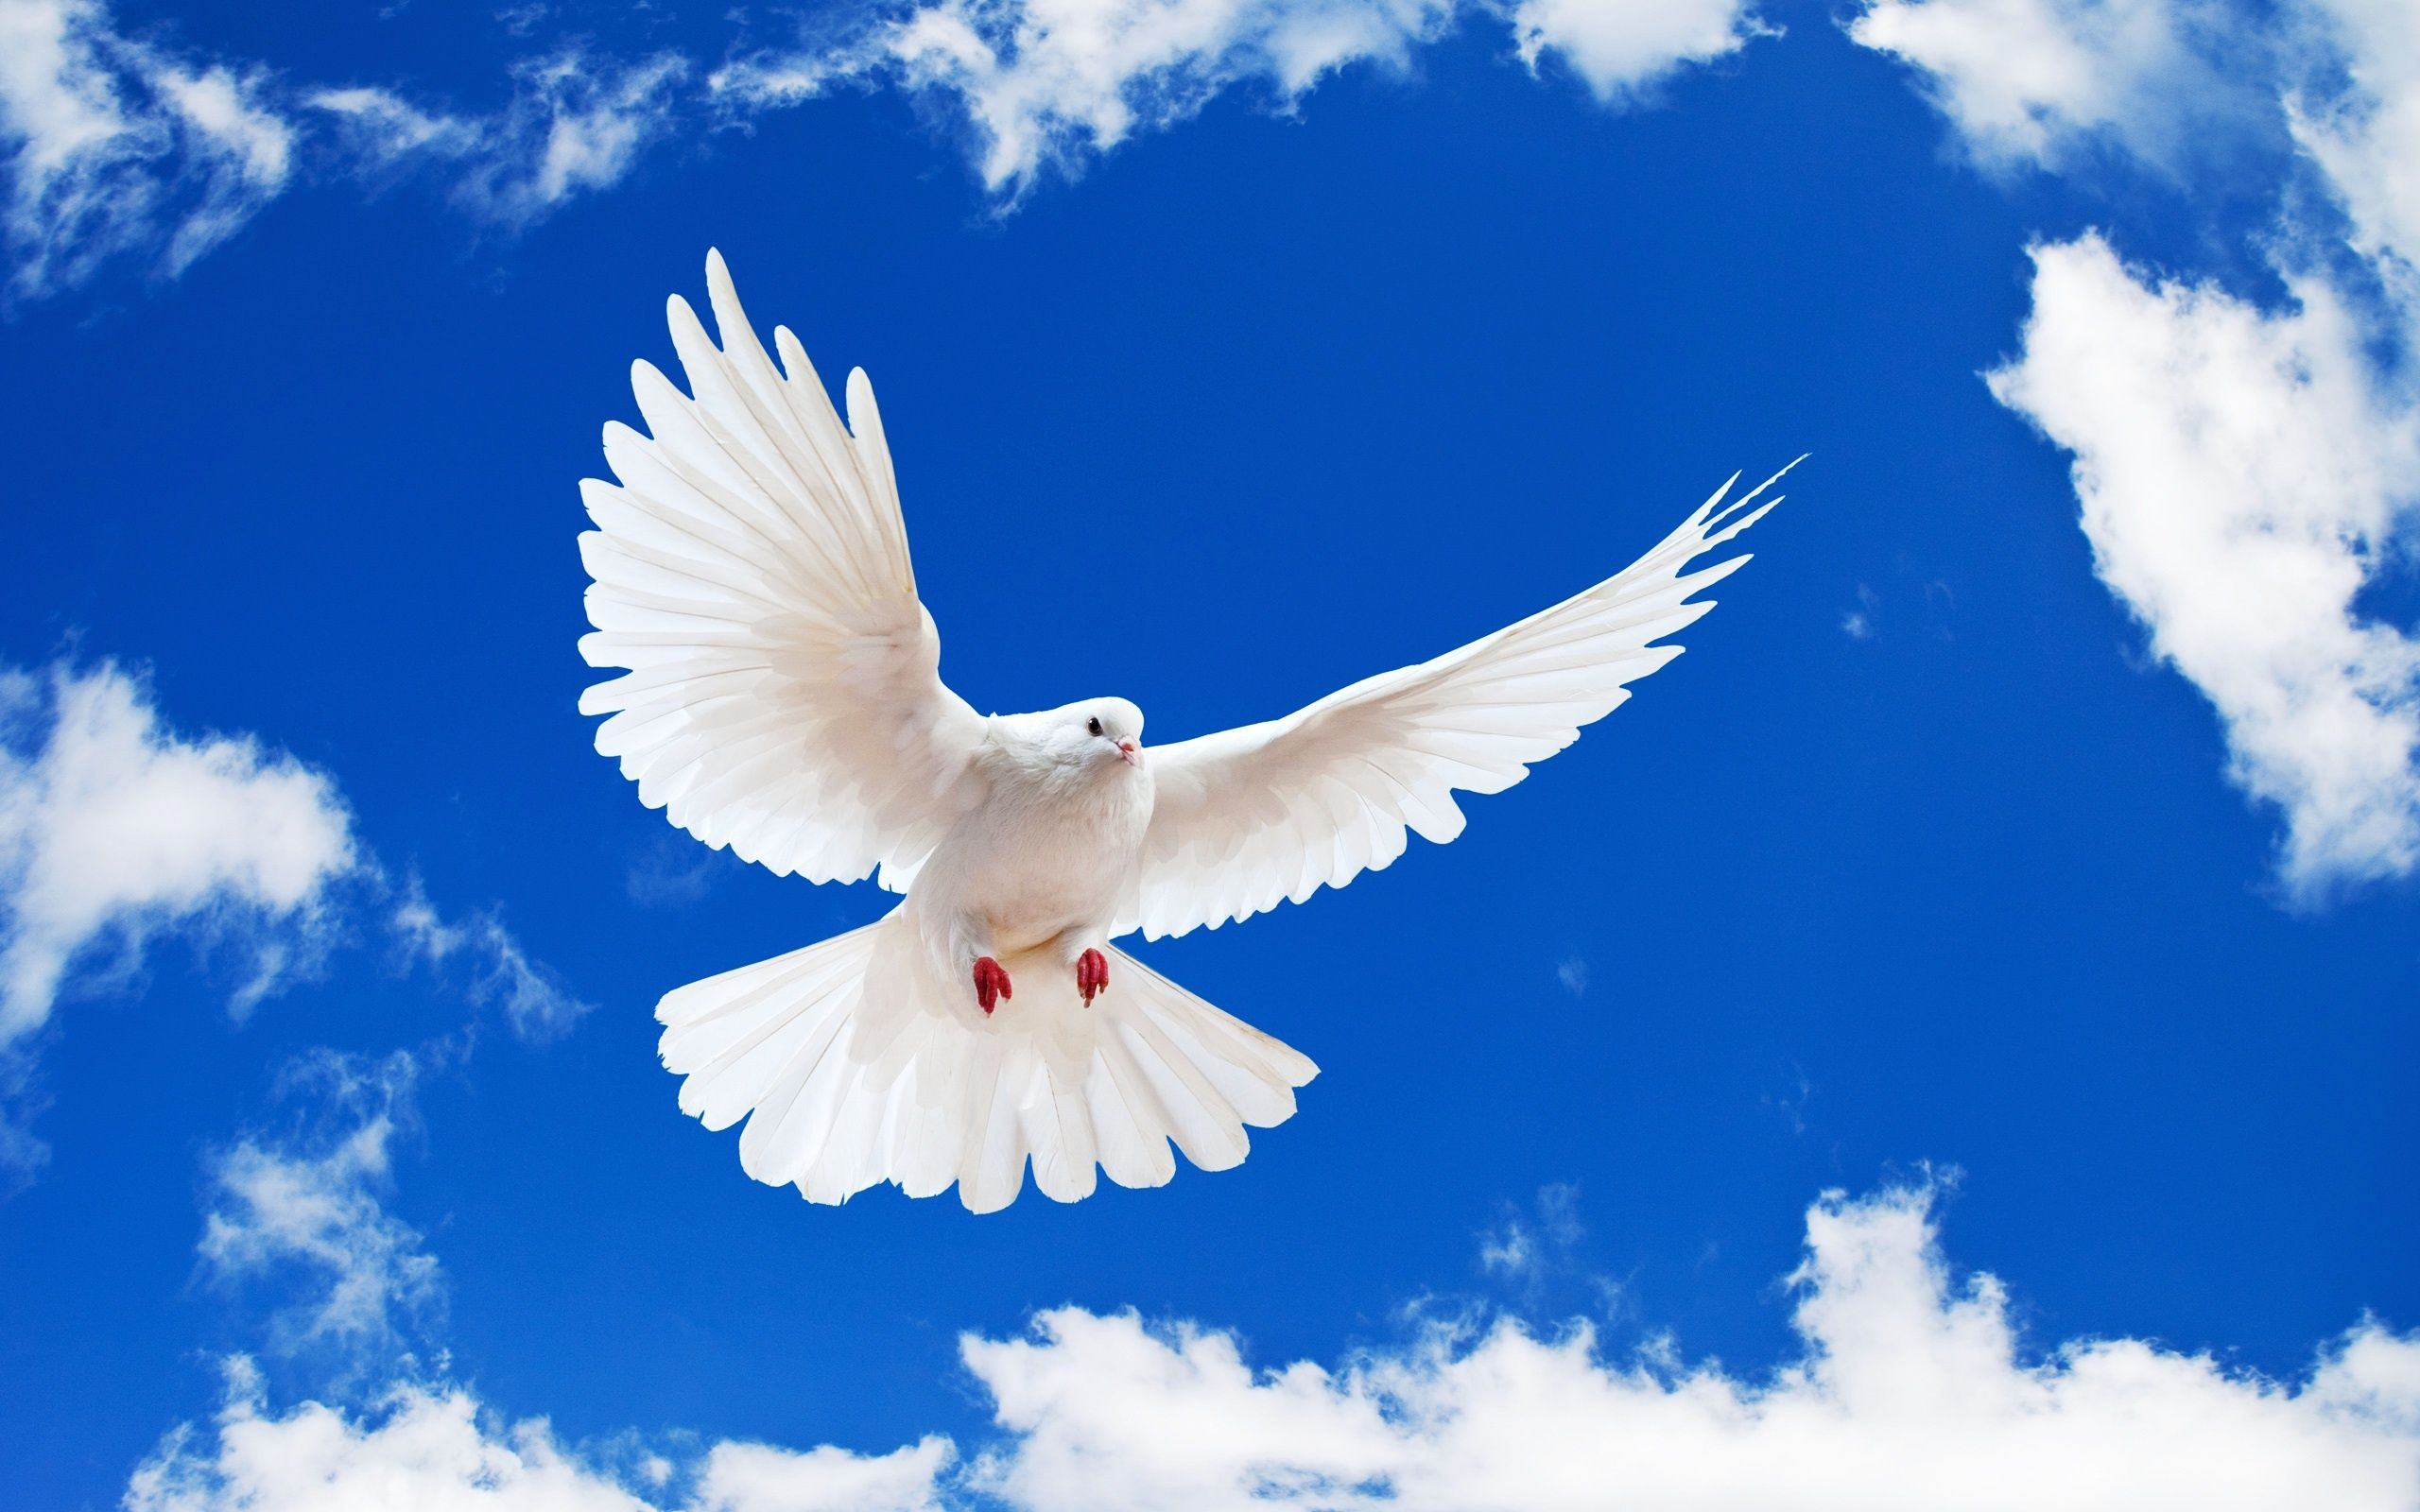 Come Holy Spirit Bird Wallpaper Dove Pictures Birds Wallpaper Hd